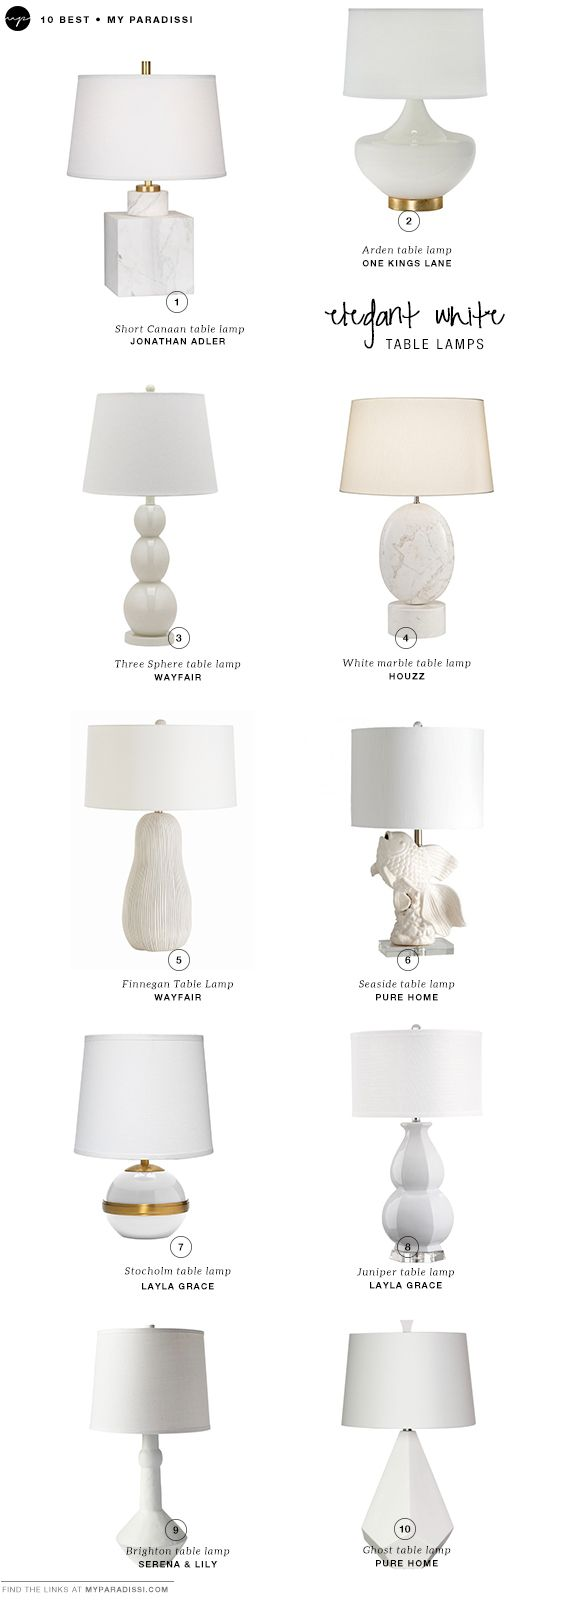 Best 25+ Table lamps ideas on Pinterest | Table lamp, Bedside lamp ...